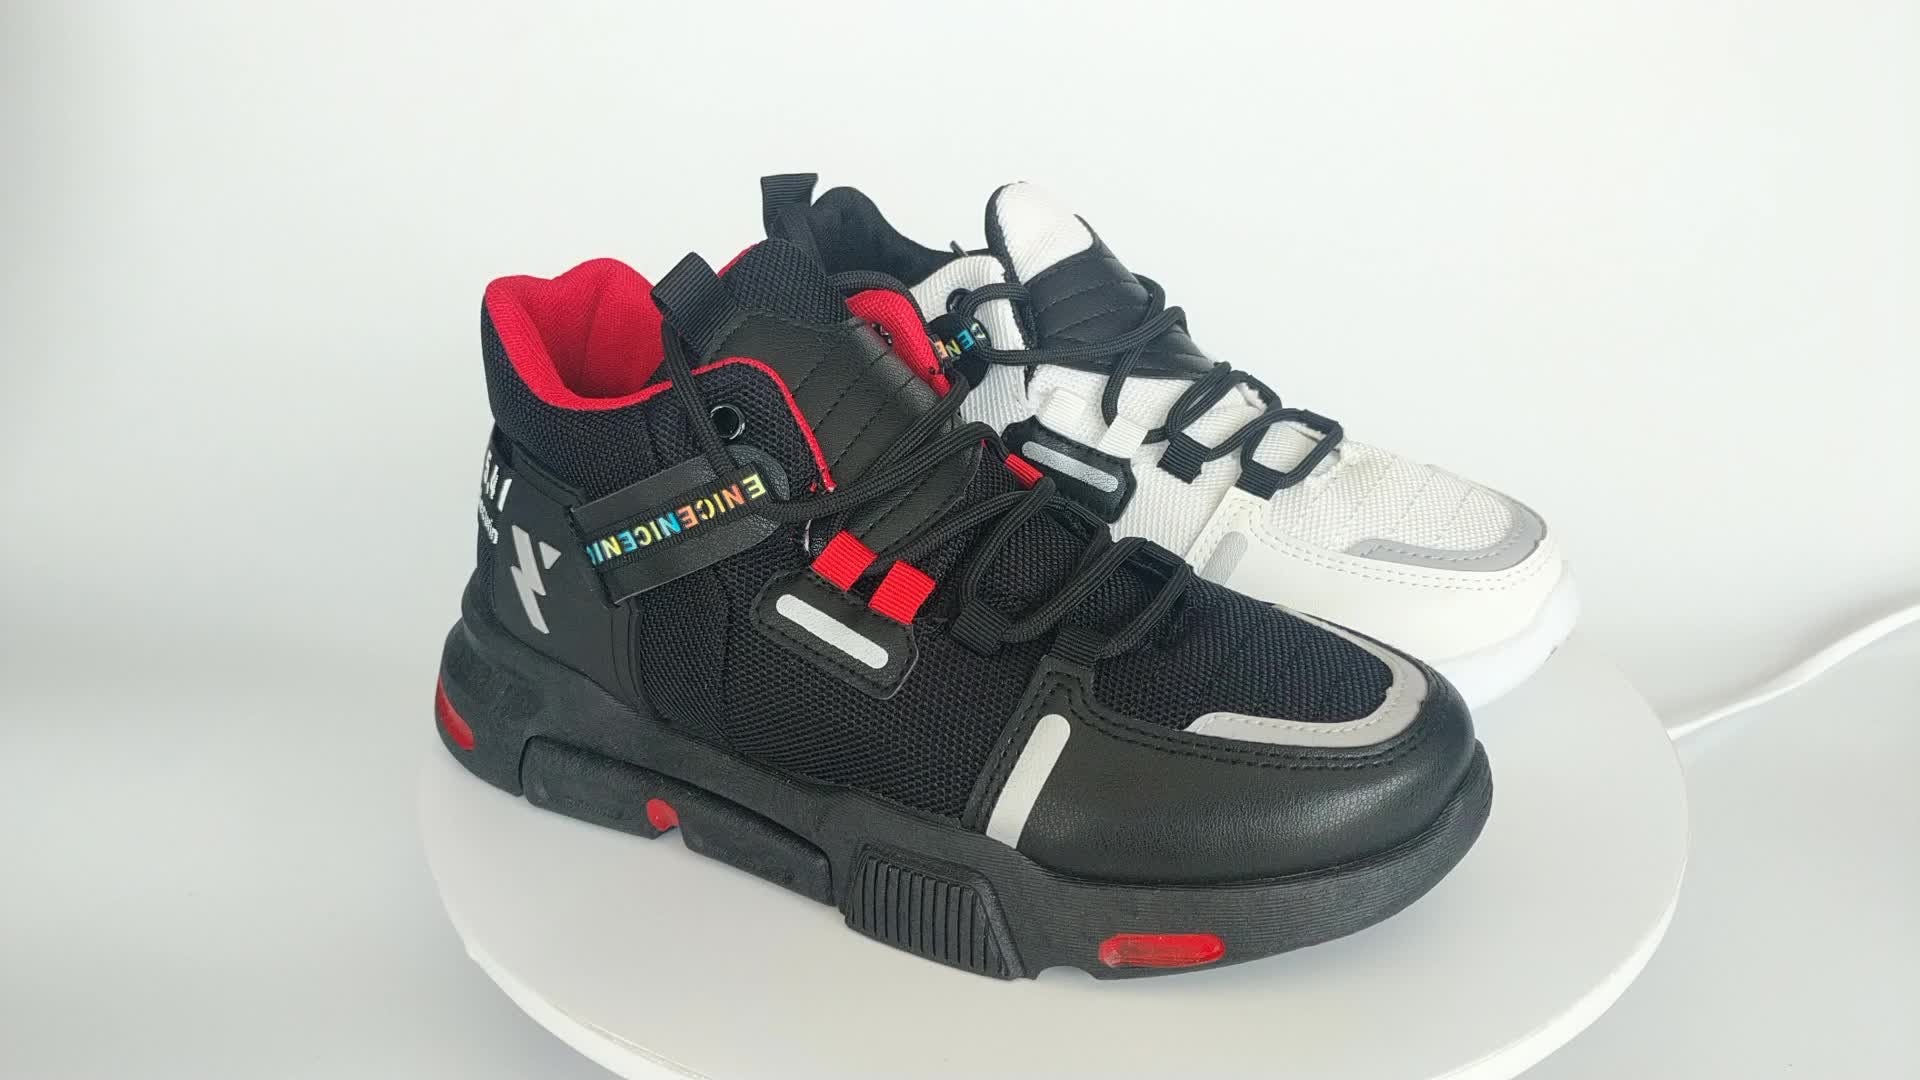 latest china factory direct trainer shoes running walking durable sport men breathable insole shoes for running sneakers